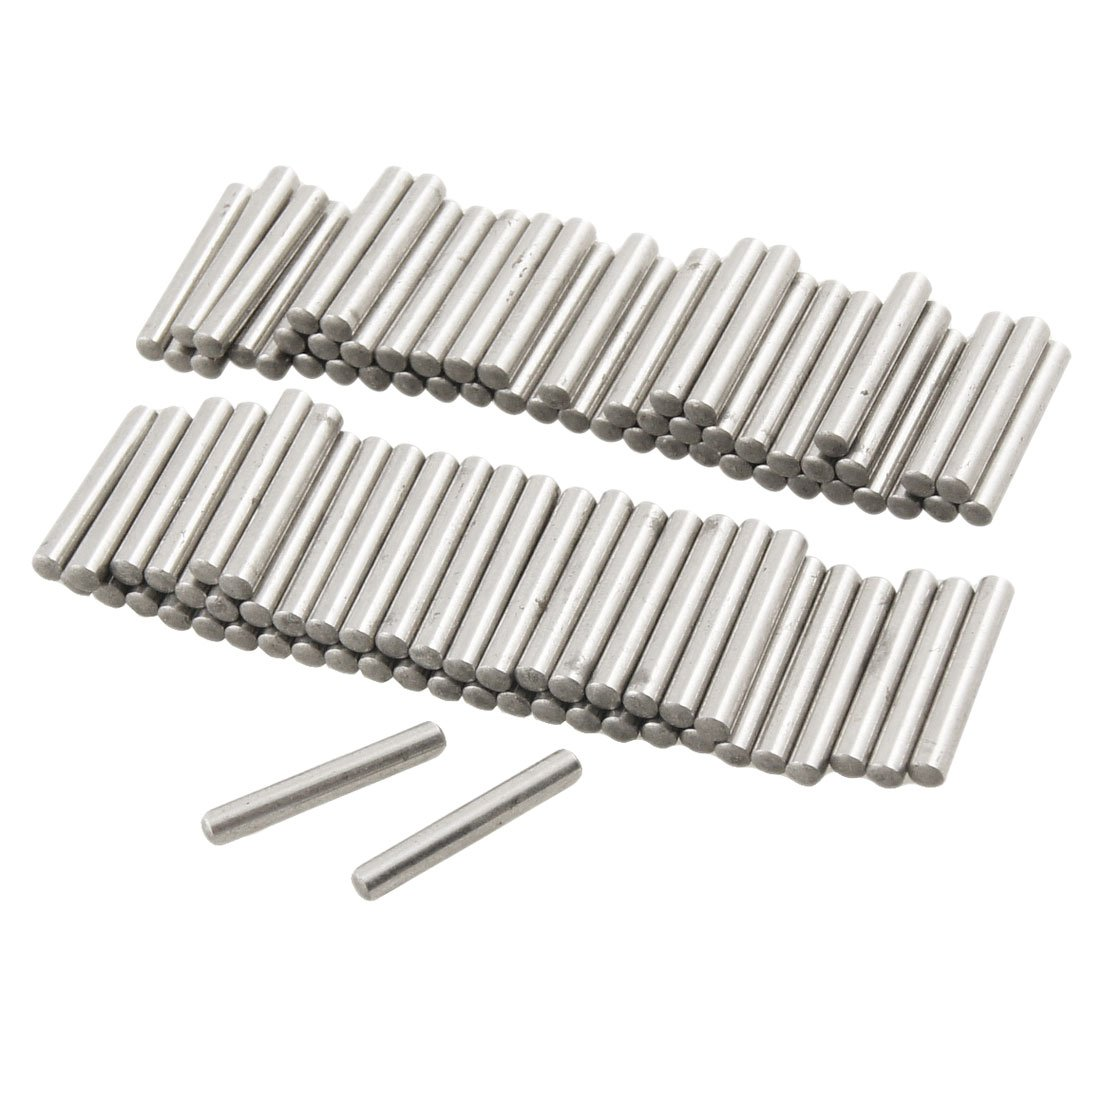 100 Pcs Stainless Steel 2.5mm x 15.8mm Dowel Pins Fasten Elements Sourcingmap a12042300ux0524